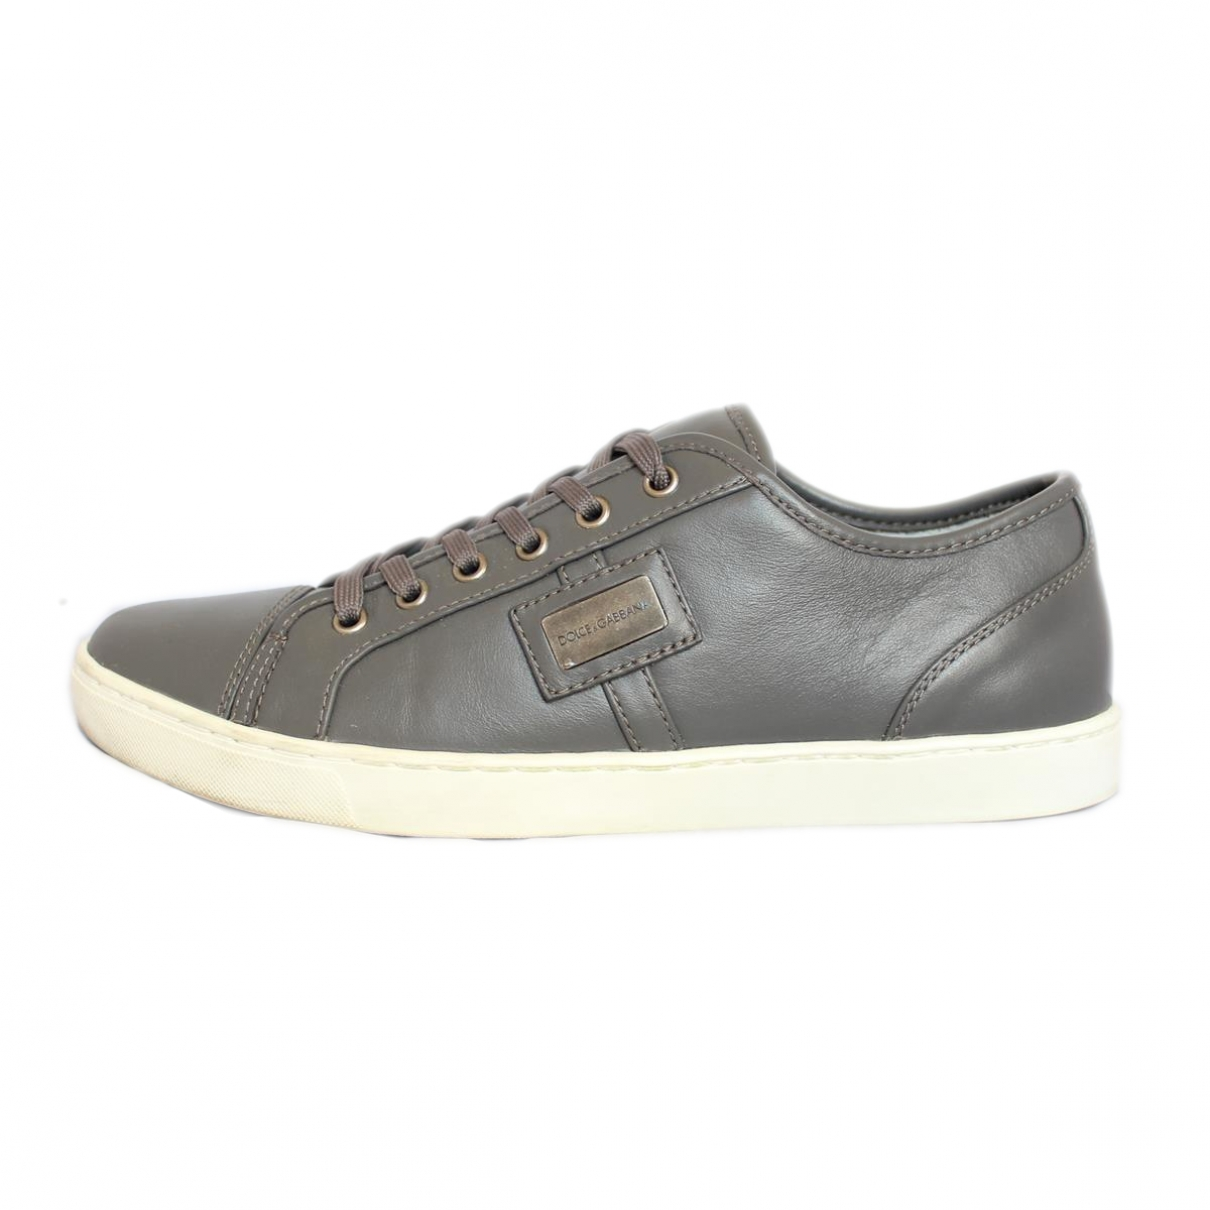 Dolce & Gabbana \N Grey Leather Trainers for Men 41 EU